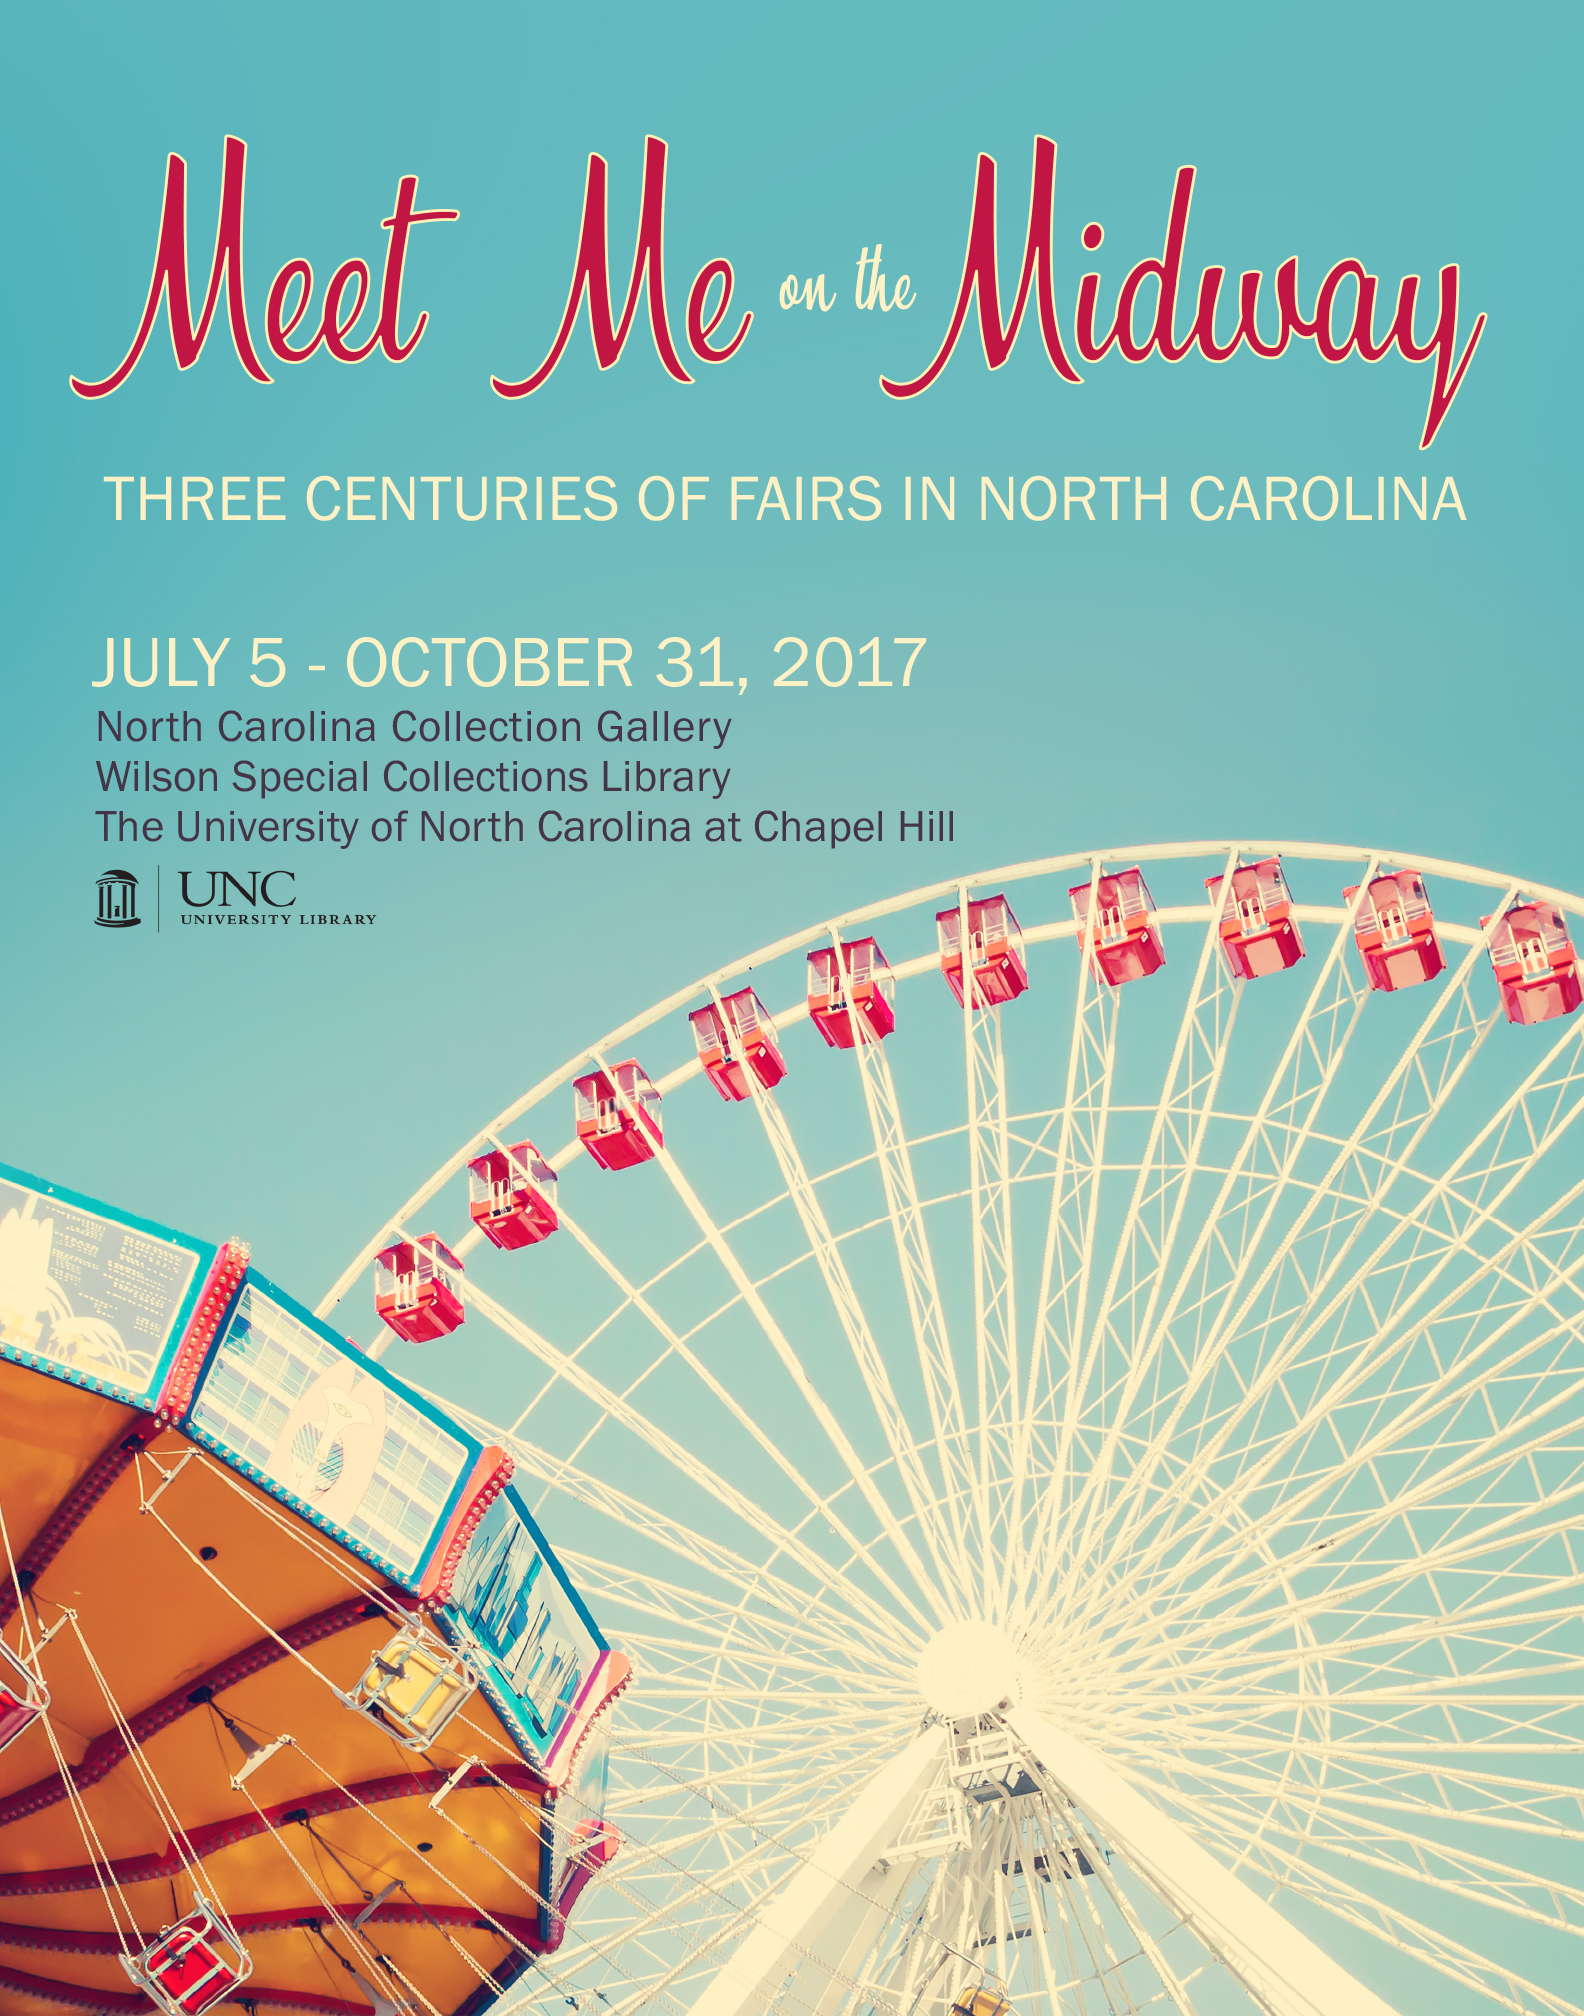 Poster advertising Meet Me on the Midway exhibit